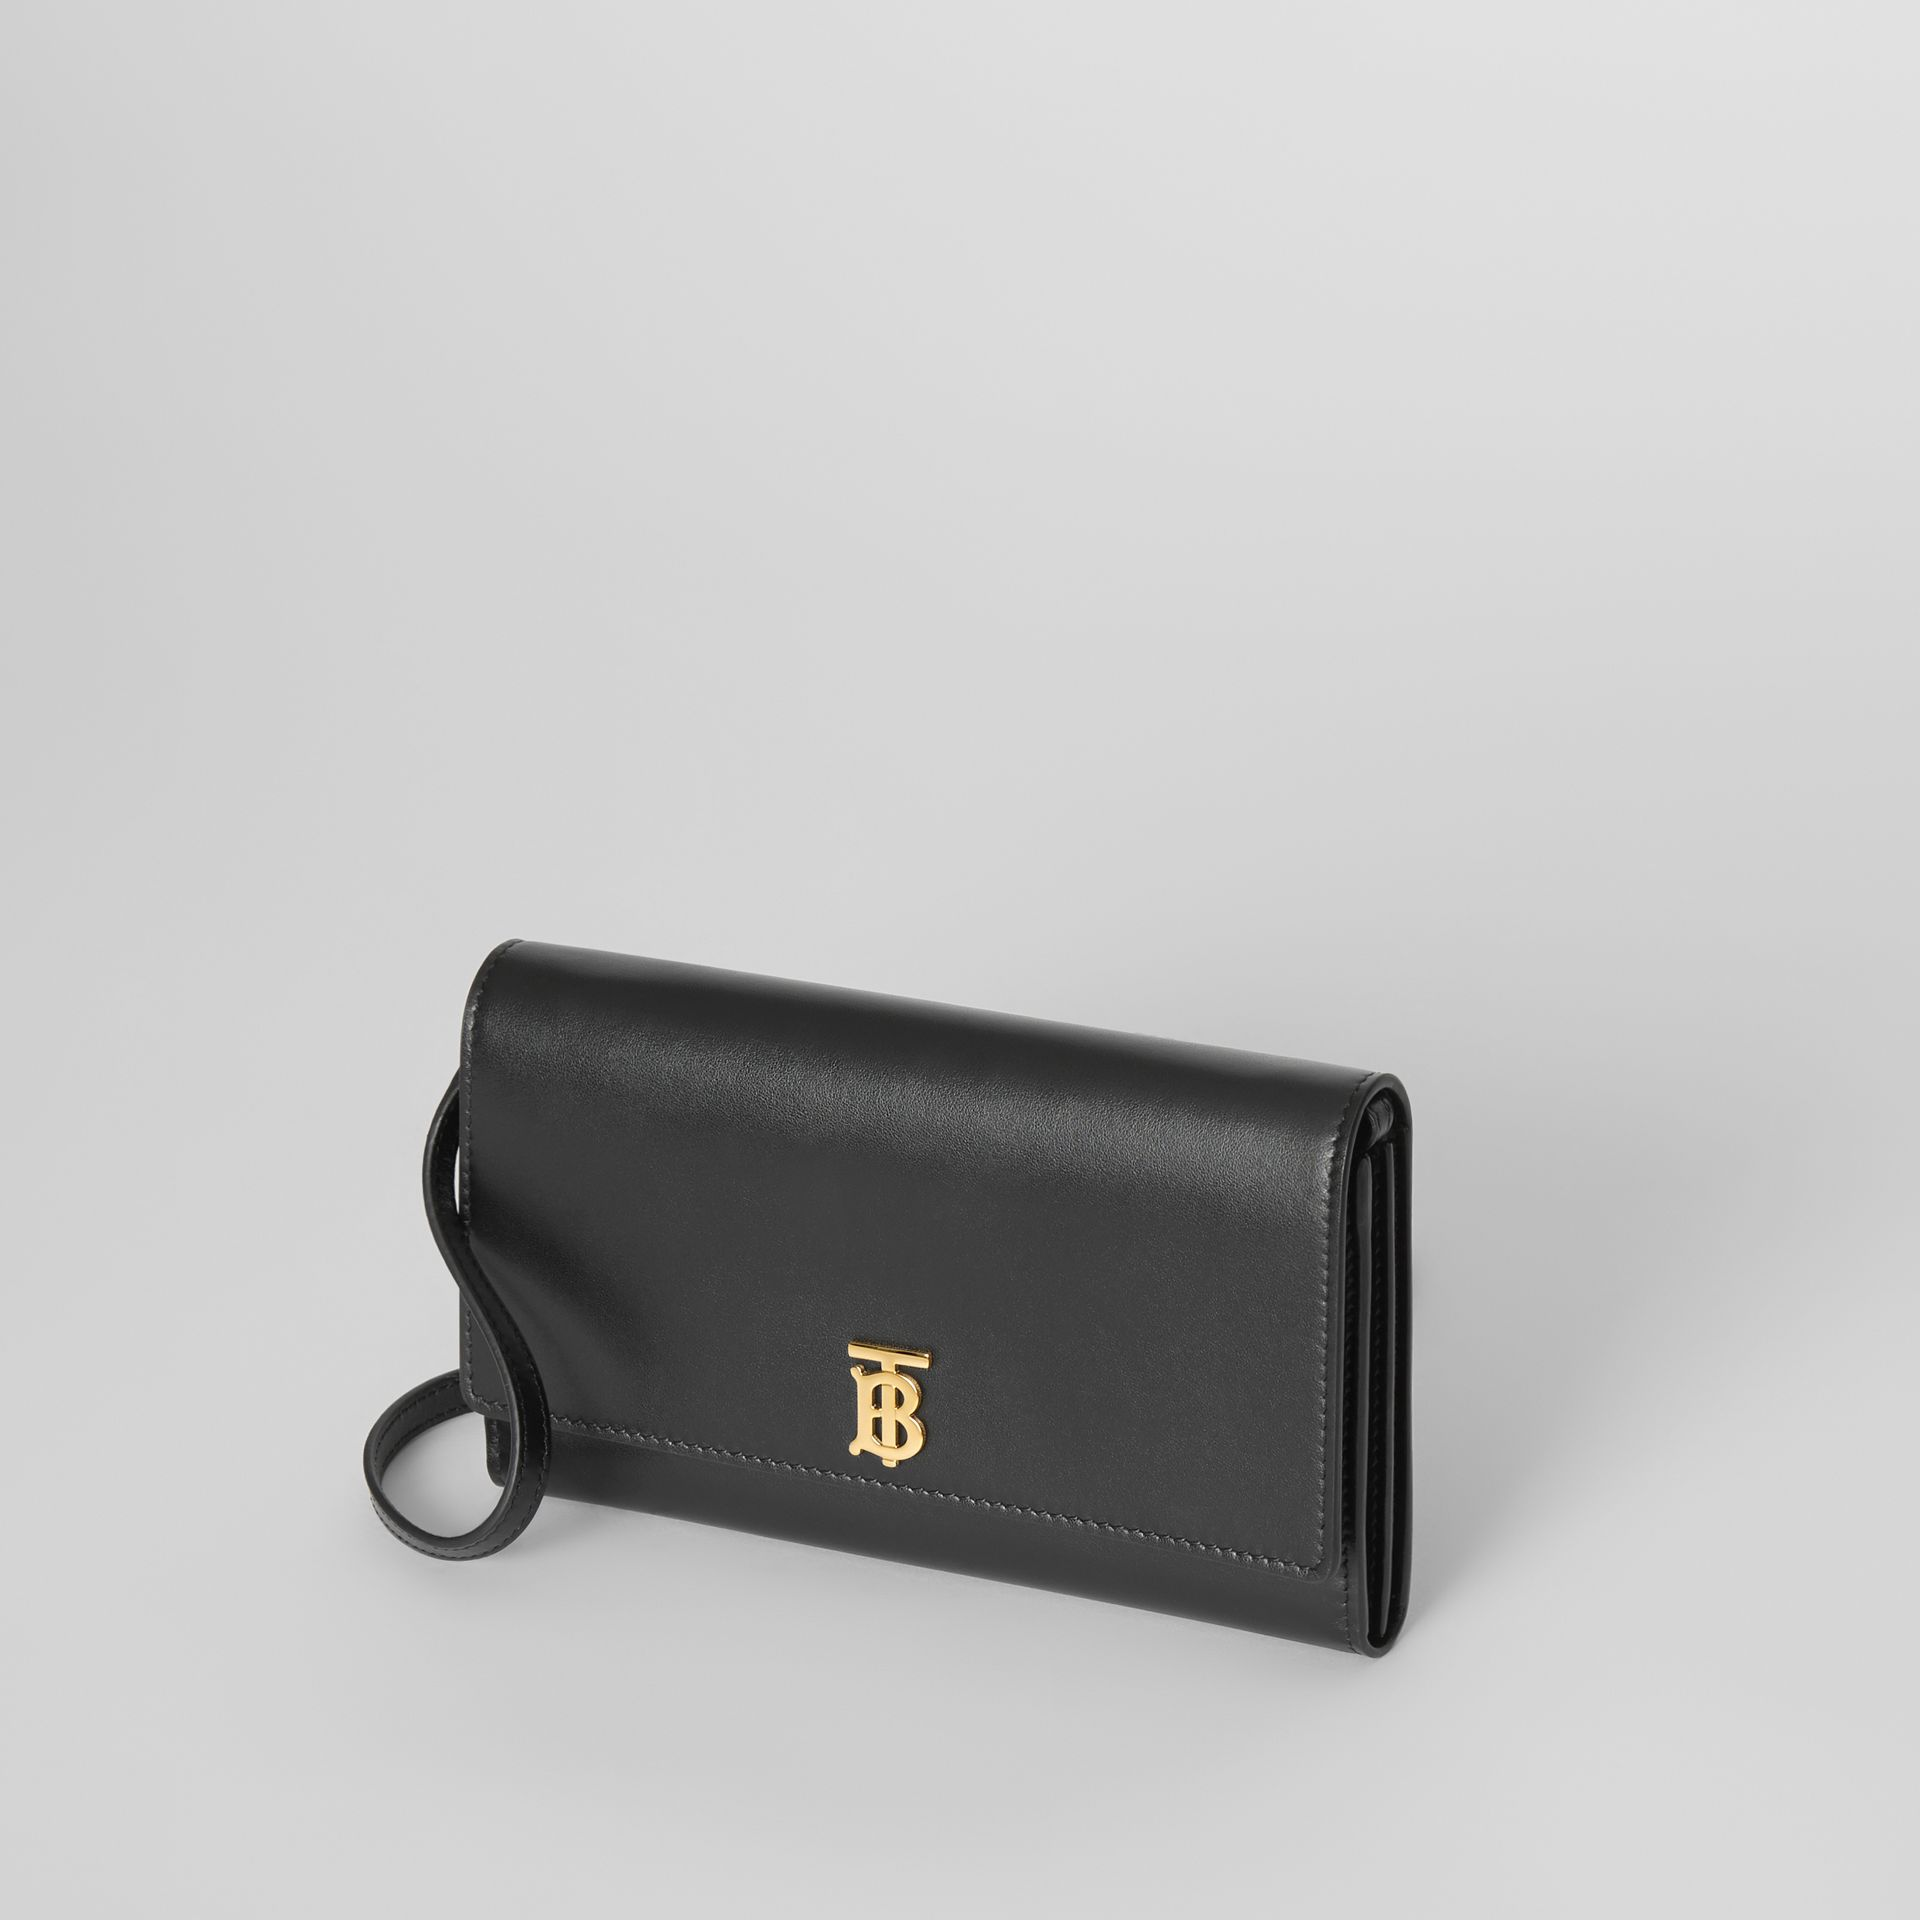 Monogram Motif Leather Wallet with Detachable Strap in Black - Women | Burberry Canada - gallery image 2